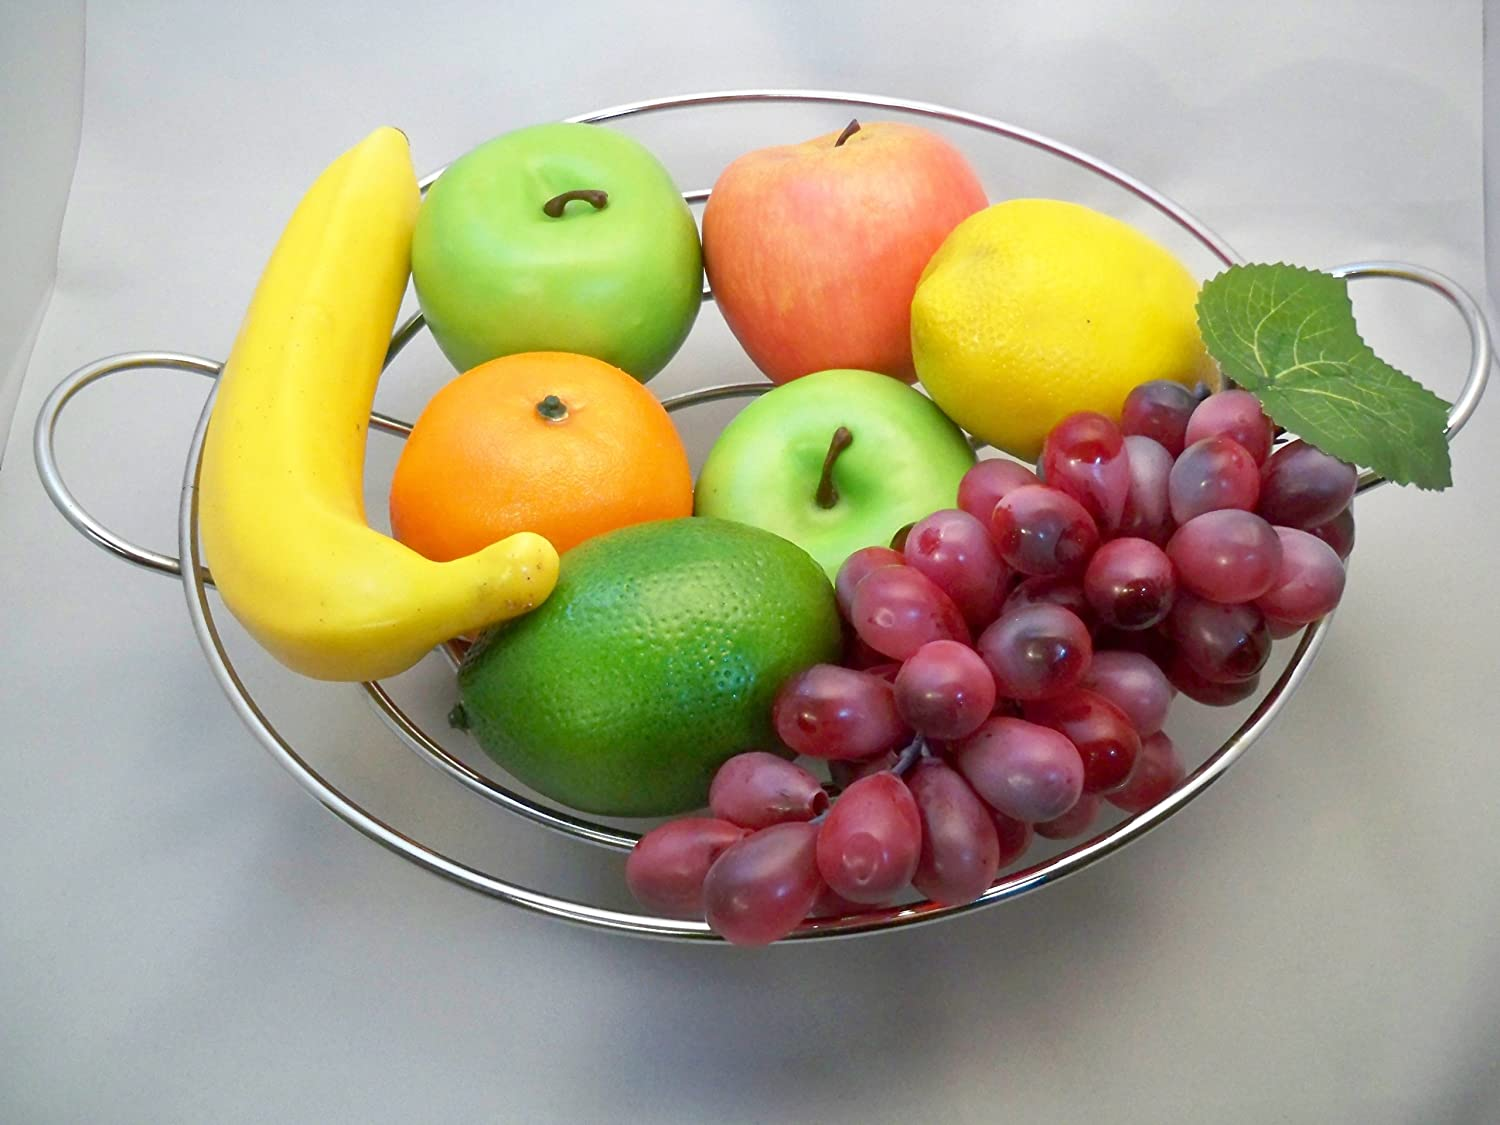 8 Pieces of Mixed Artificial Decorative Fruit Display i-Horizon Plus